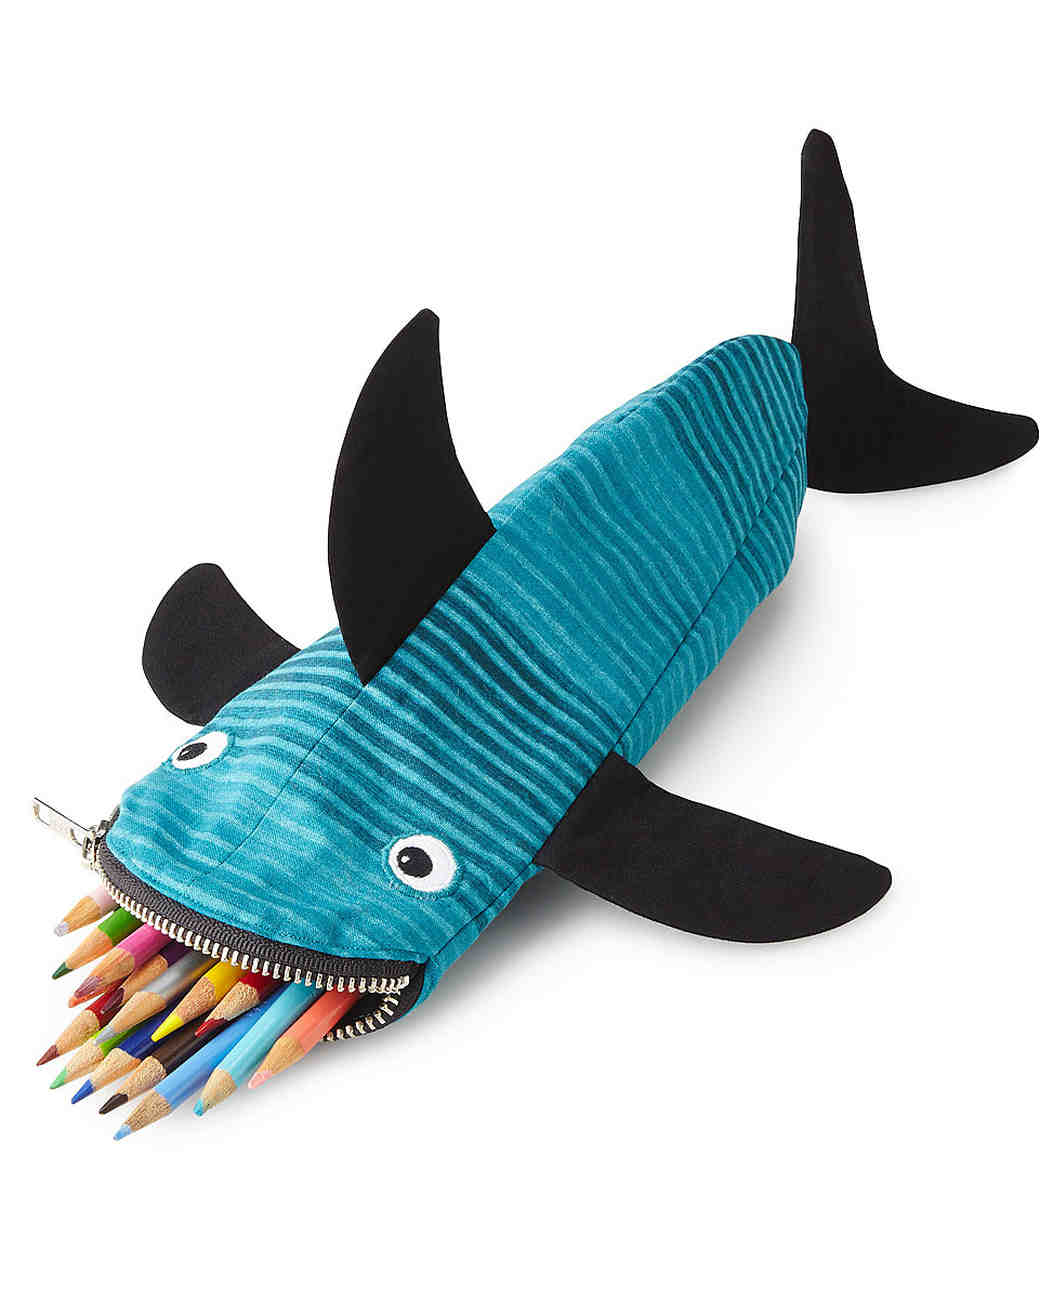 ring-bearer-gift-shark-pouch-0616.jpg